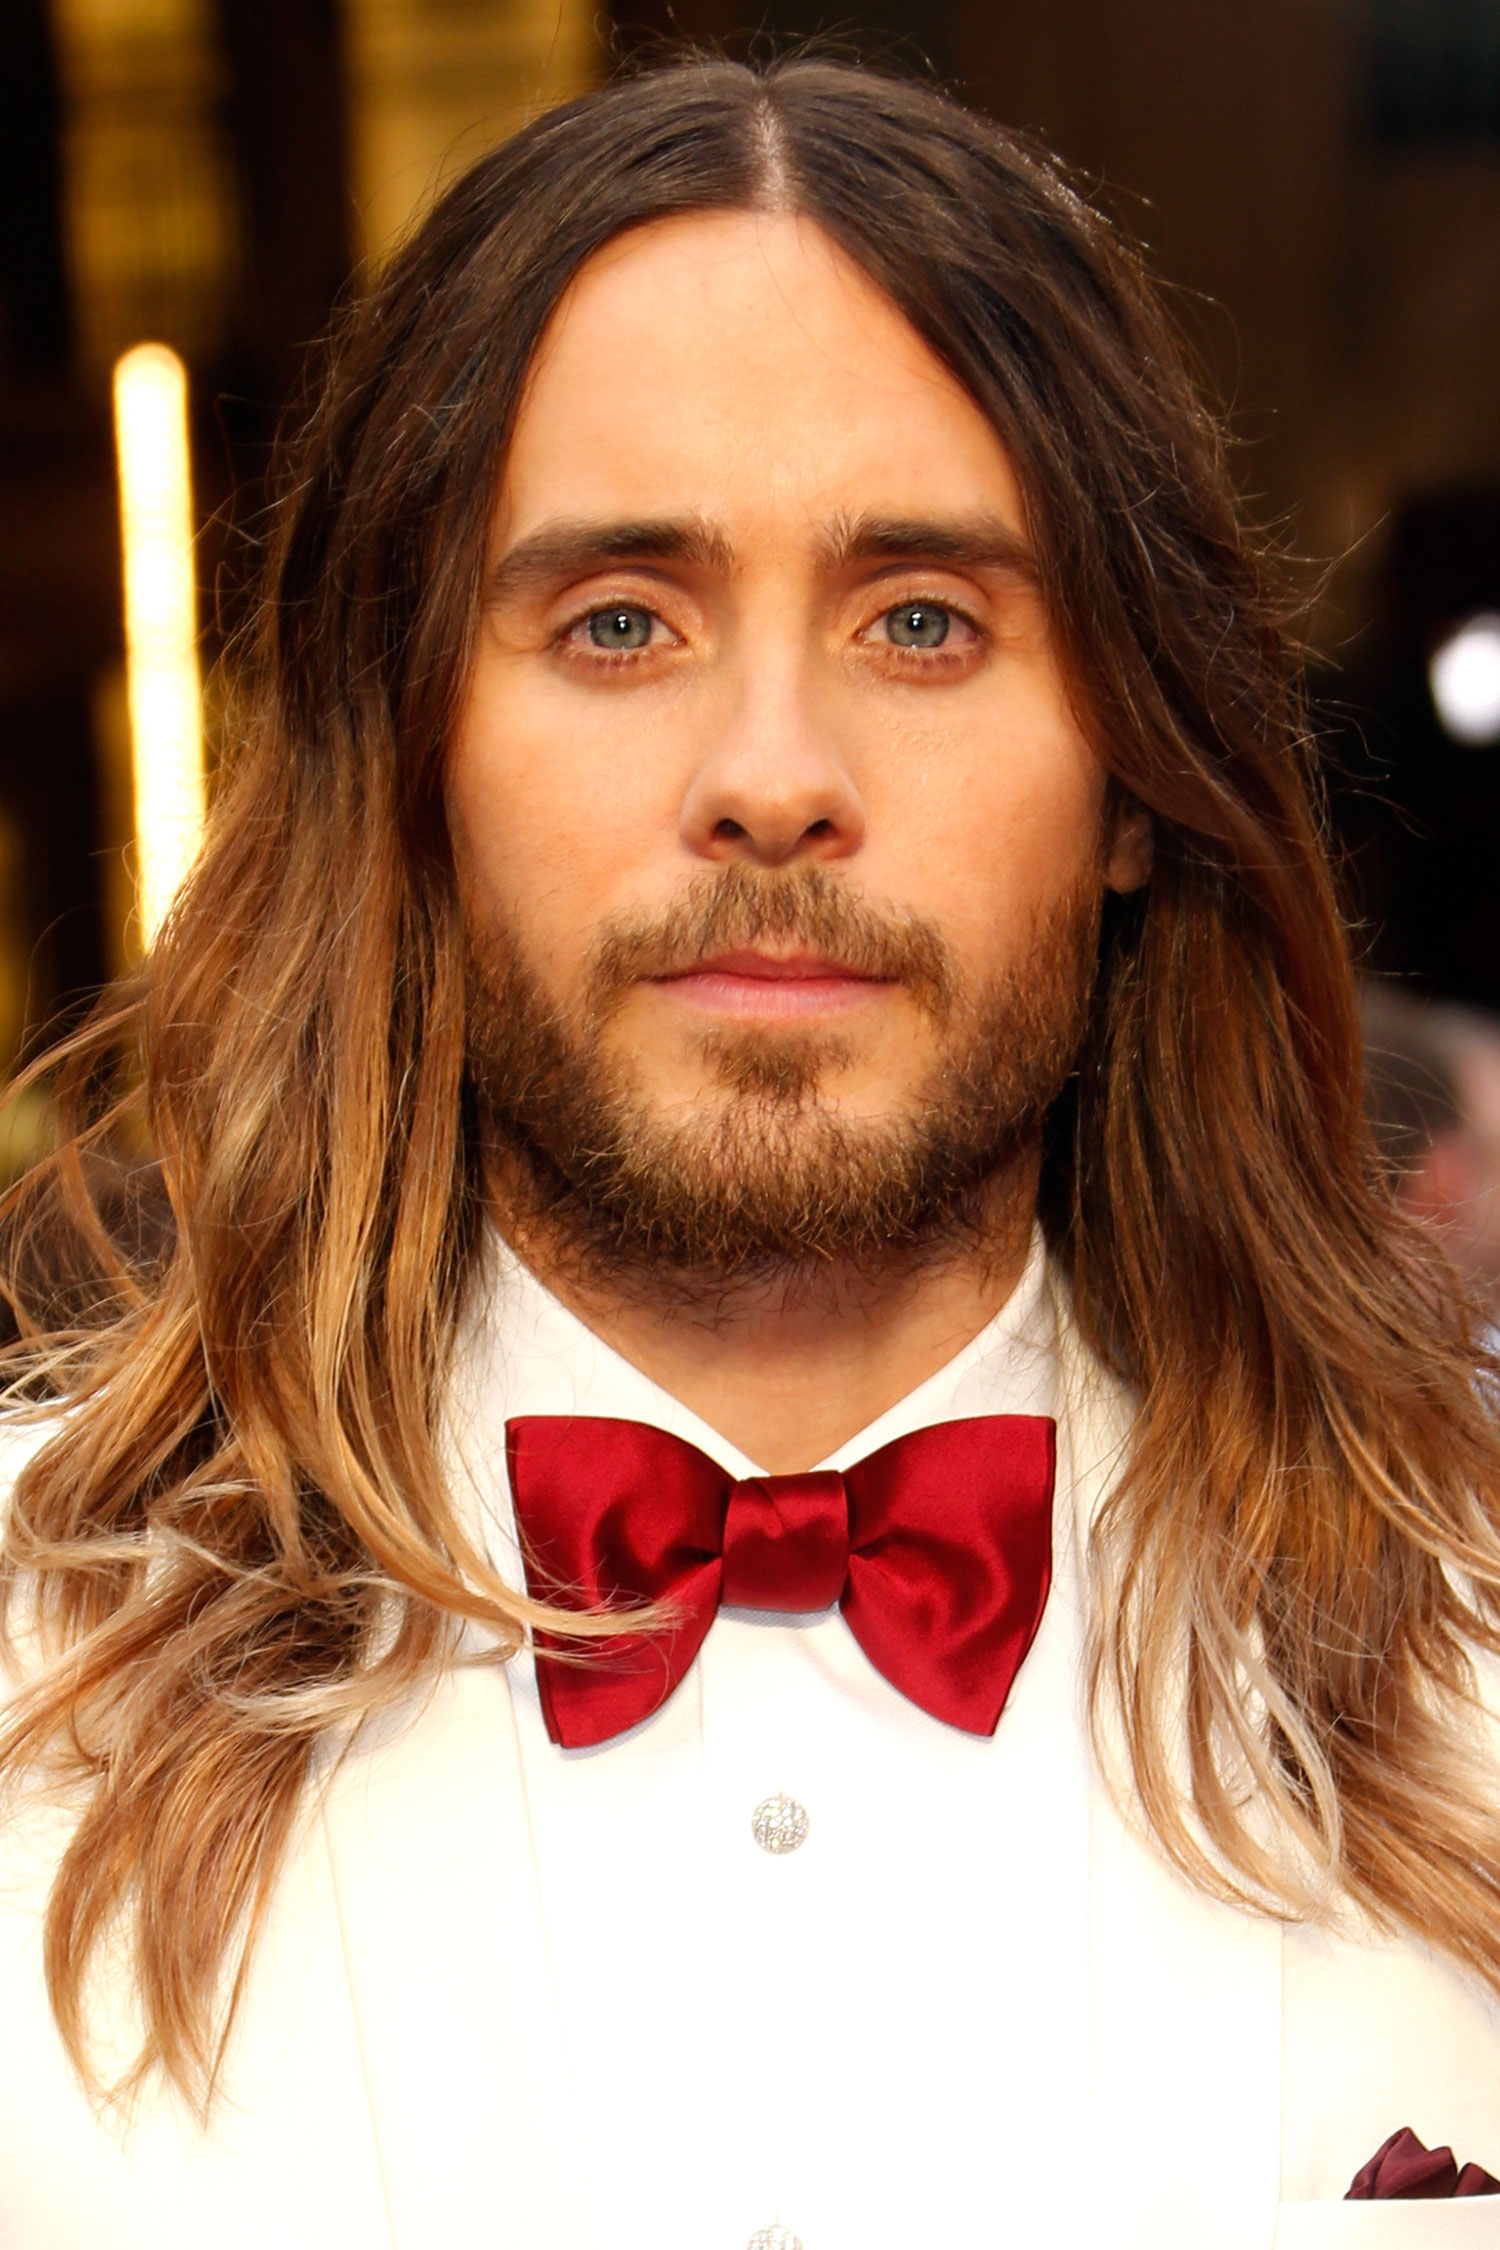 Jared Leto Ombre Long Hair 2014 - Jared Leto's Oscar Hair